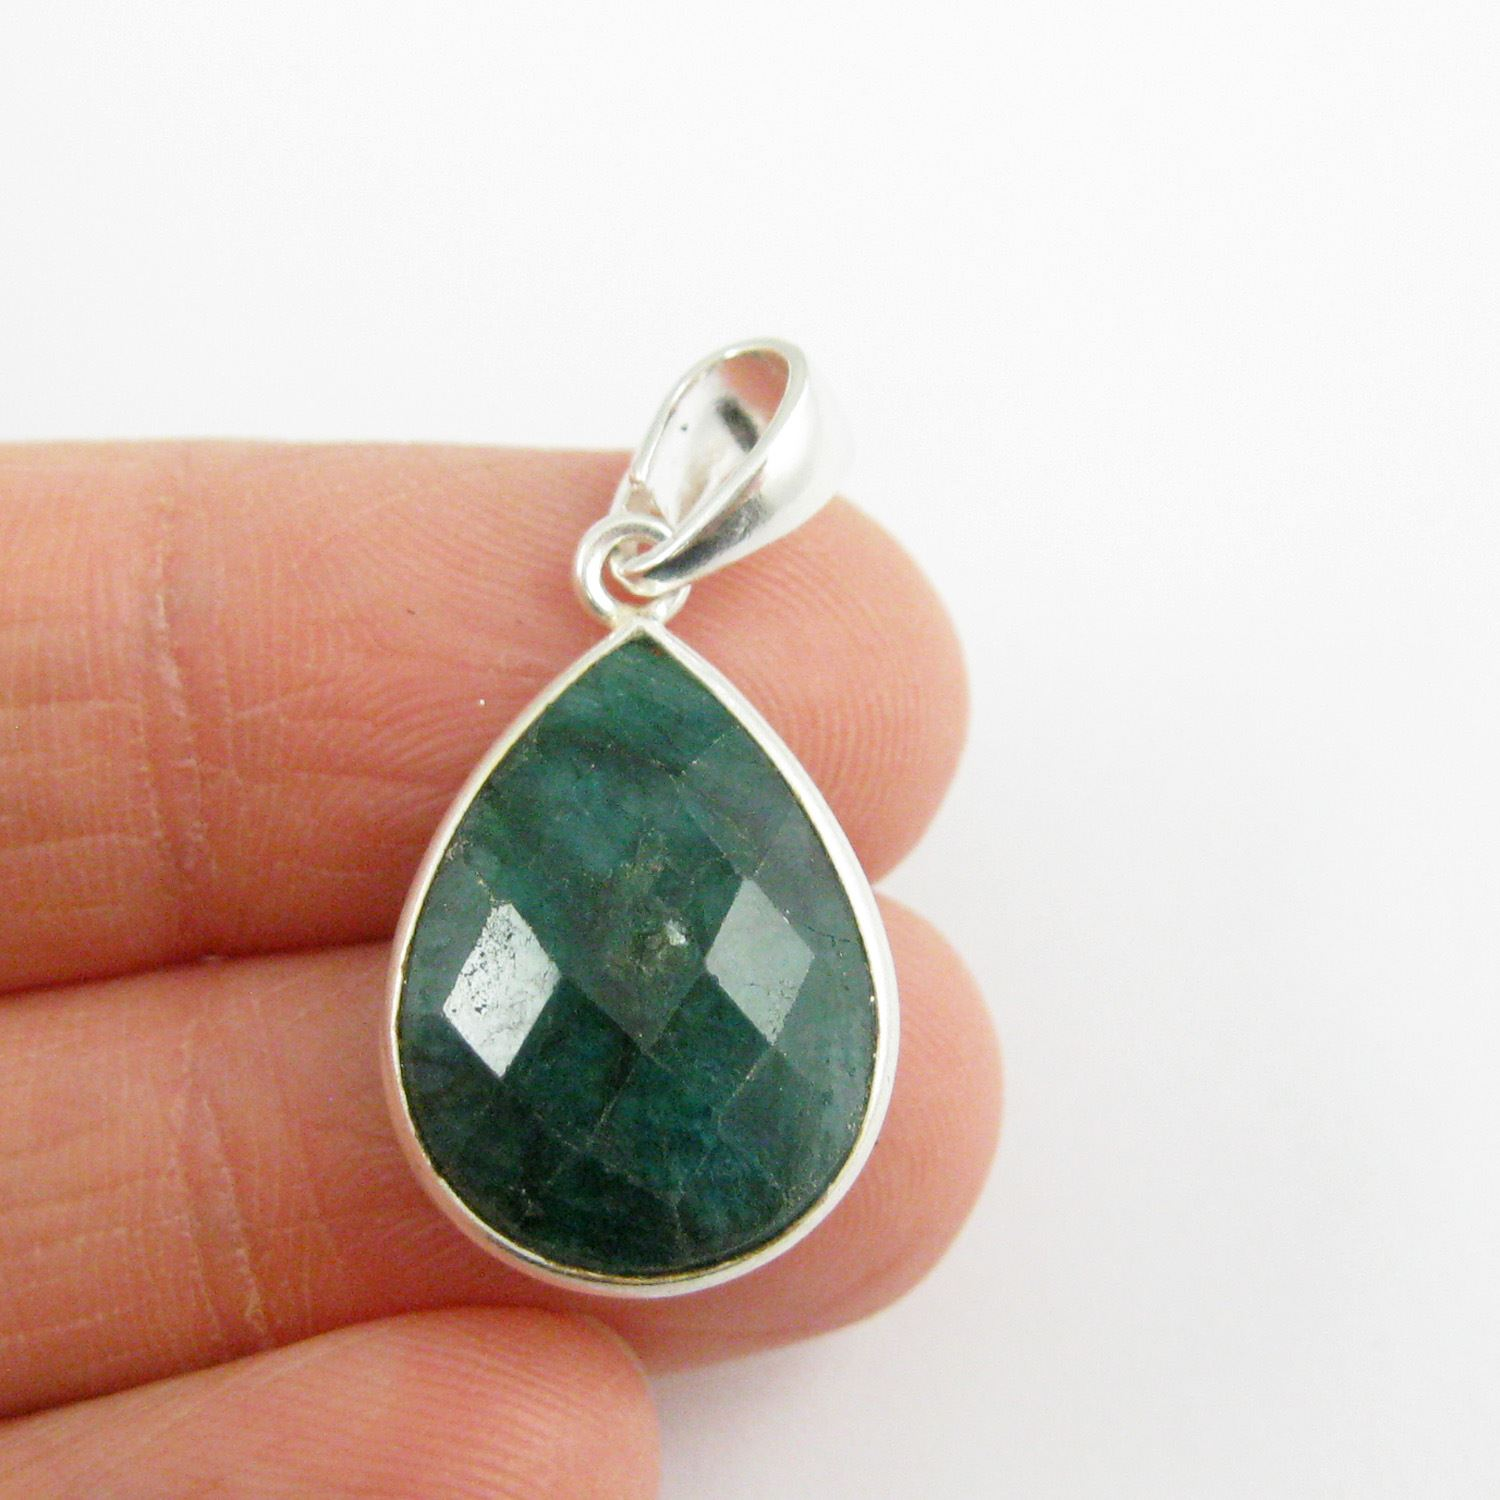 Bezel Gemstone Pendant with Bail - Sterling Silver Teardrop Gem Pendant - Ready for Necklace - 29mm - Emerald Dyed